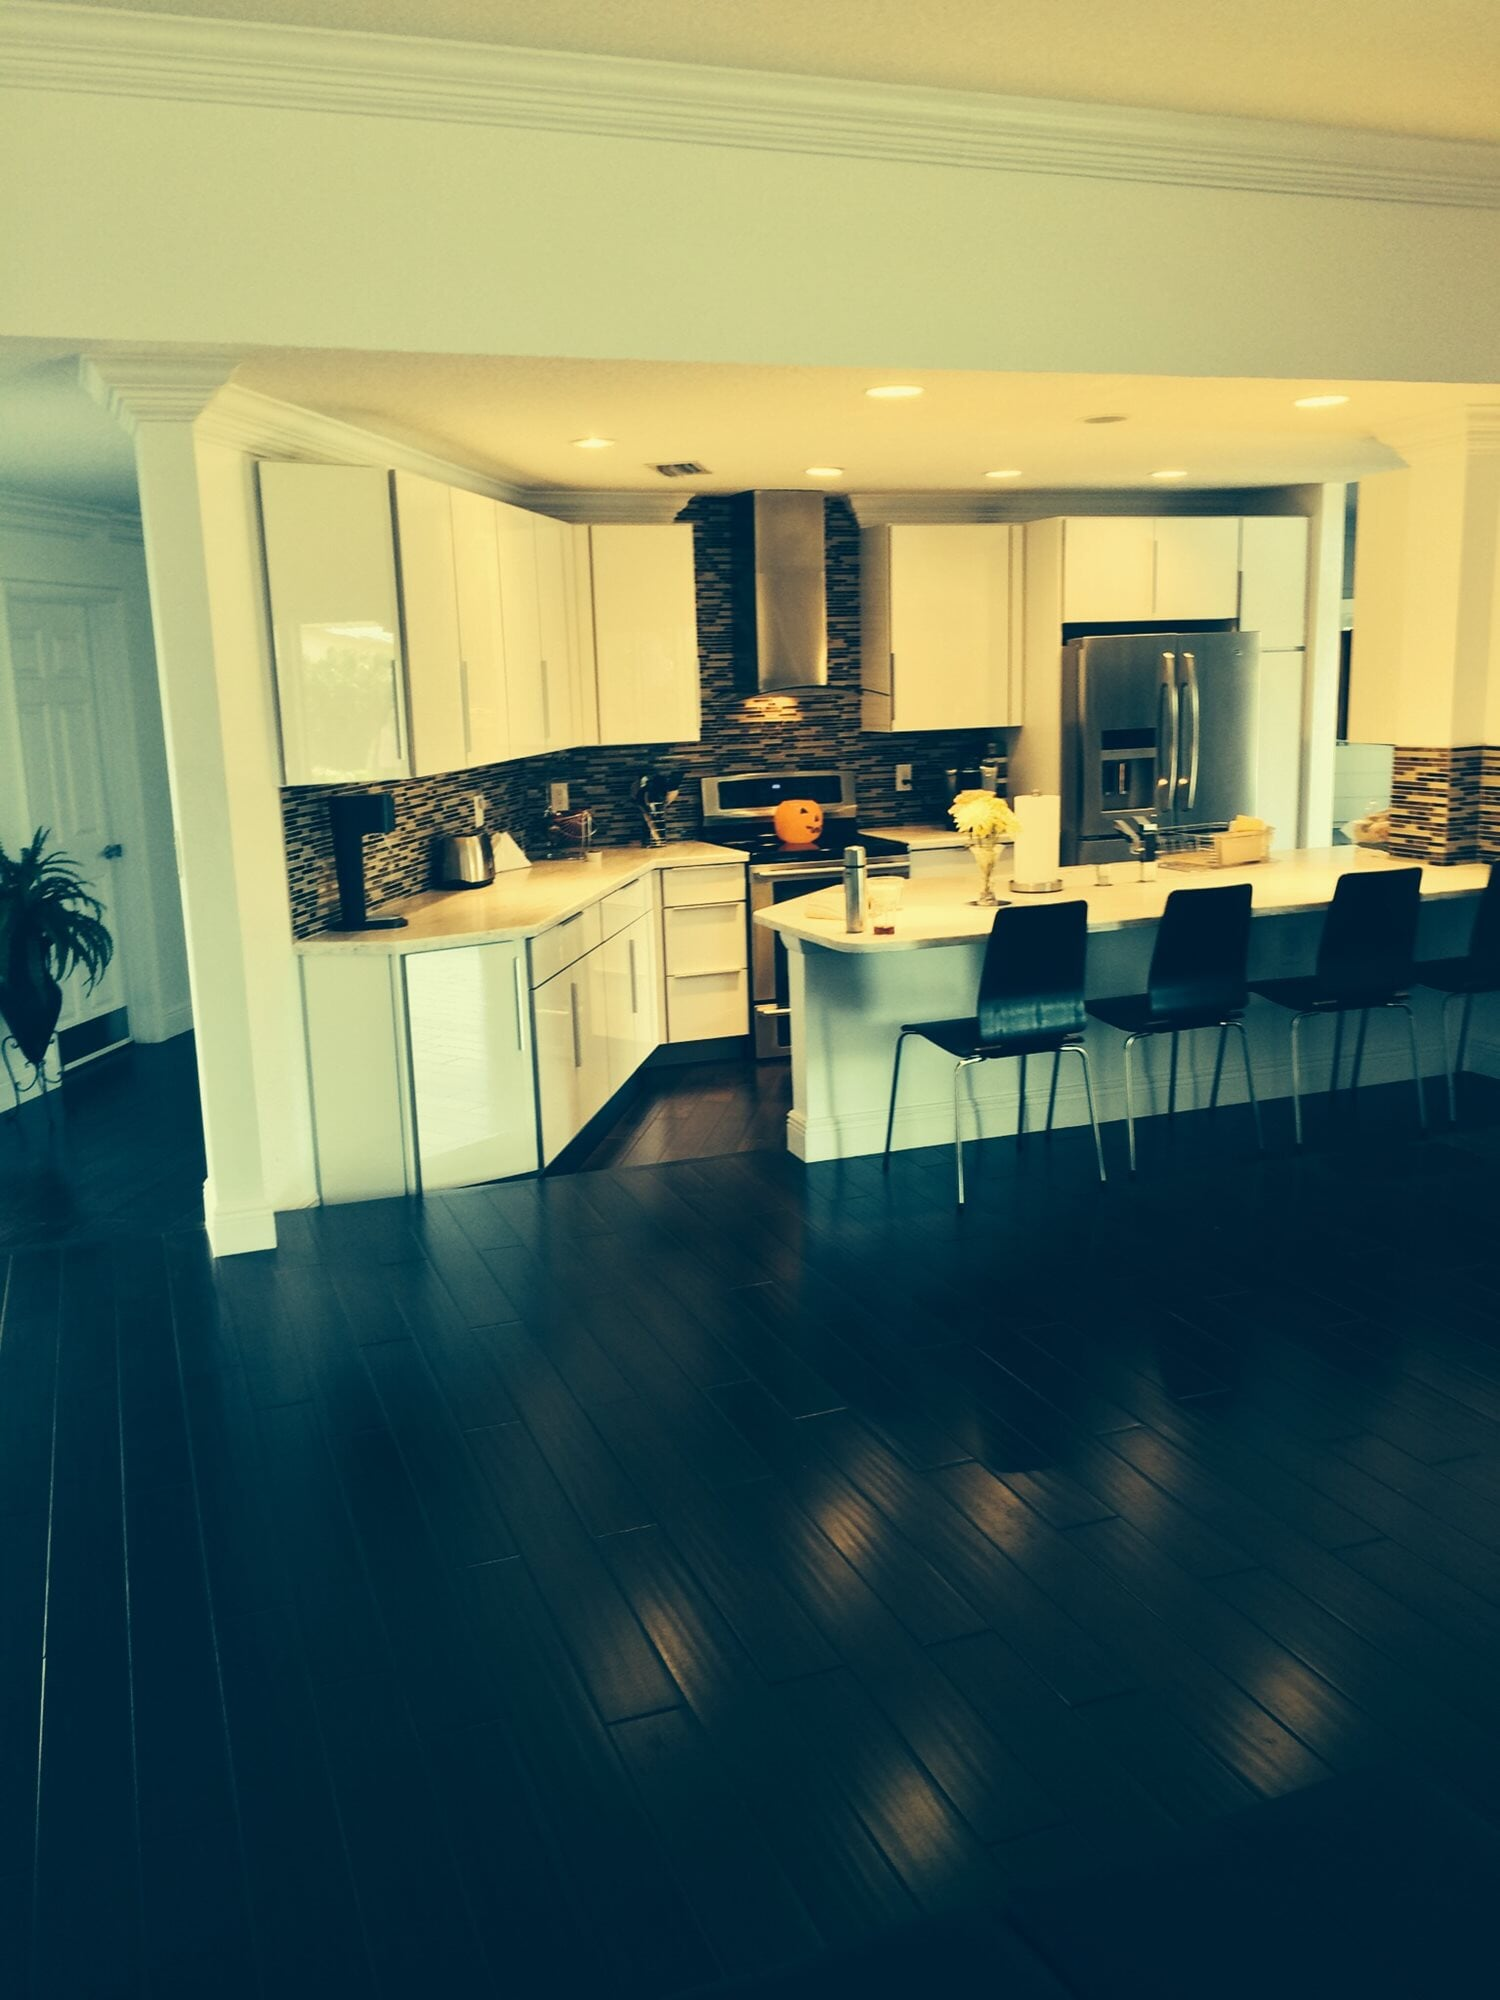 Black and white kitchen design in Palm Beach Gardens, FL from Floors For You Kitchen & Bath